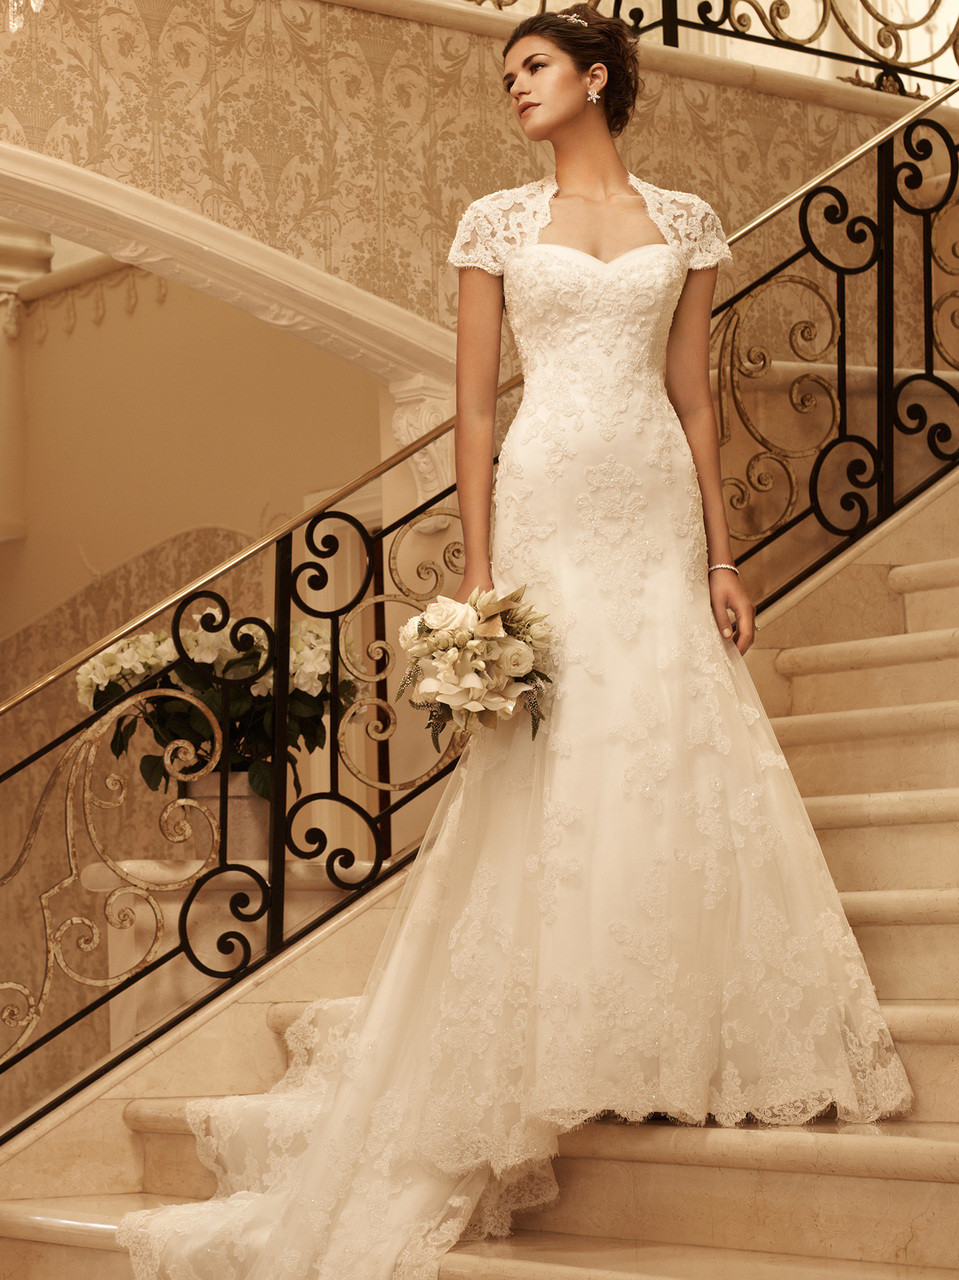 Short Sleeve Fit And Flare Casablanca Bridal Gown 2102 ...